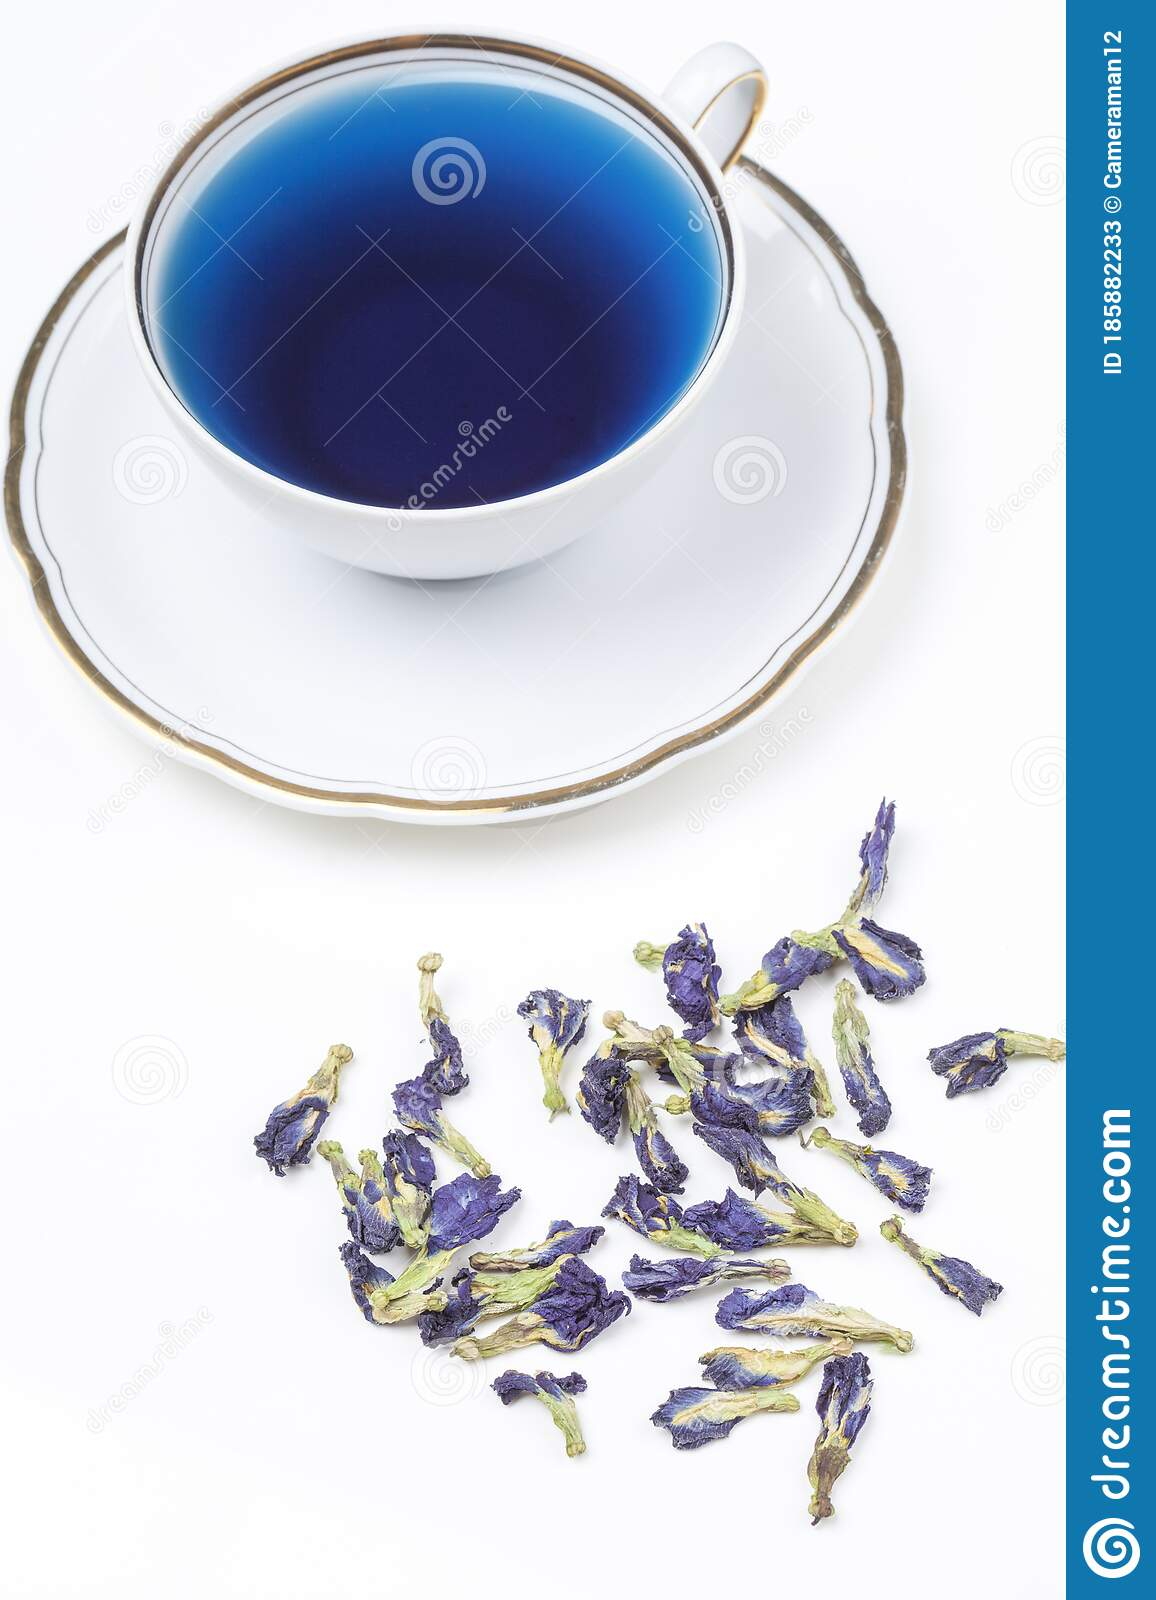 Order online Purple Chang Shu Tea: where to buy, cost, Real Consumer Reviews